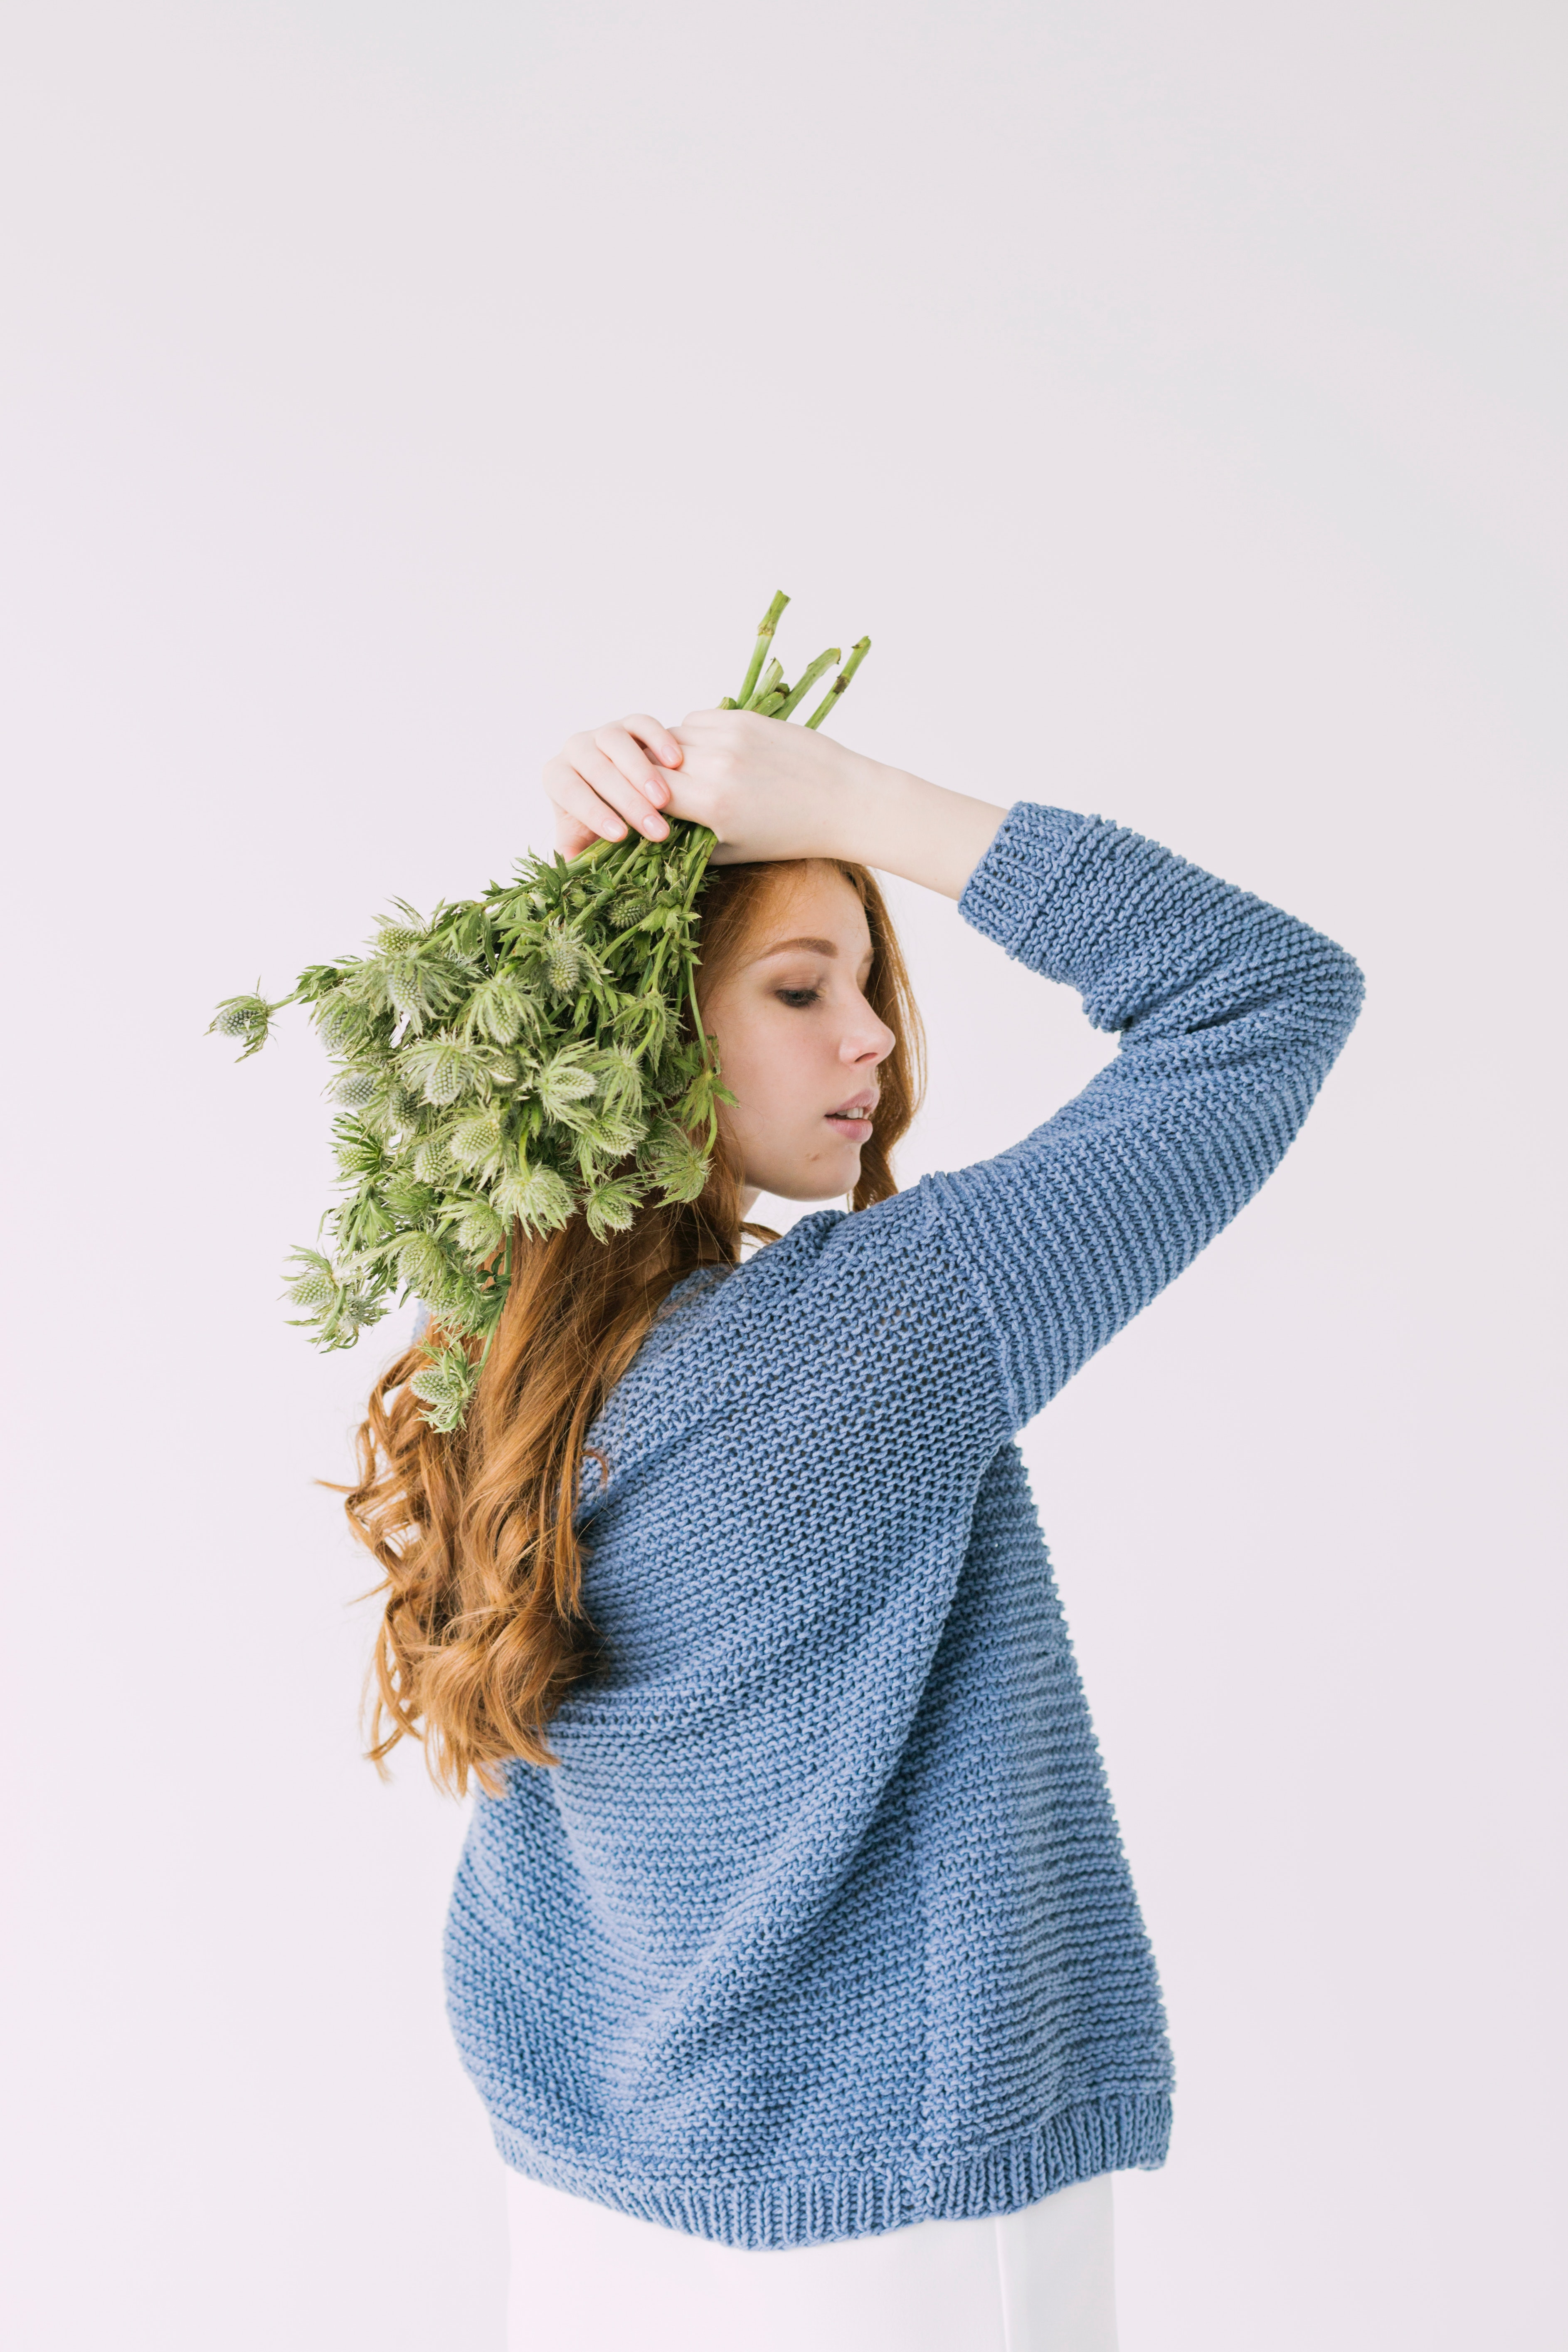 Woman Holding Sweater